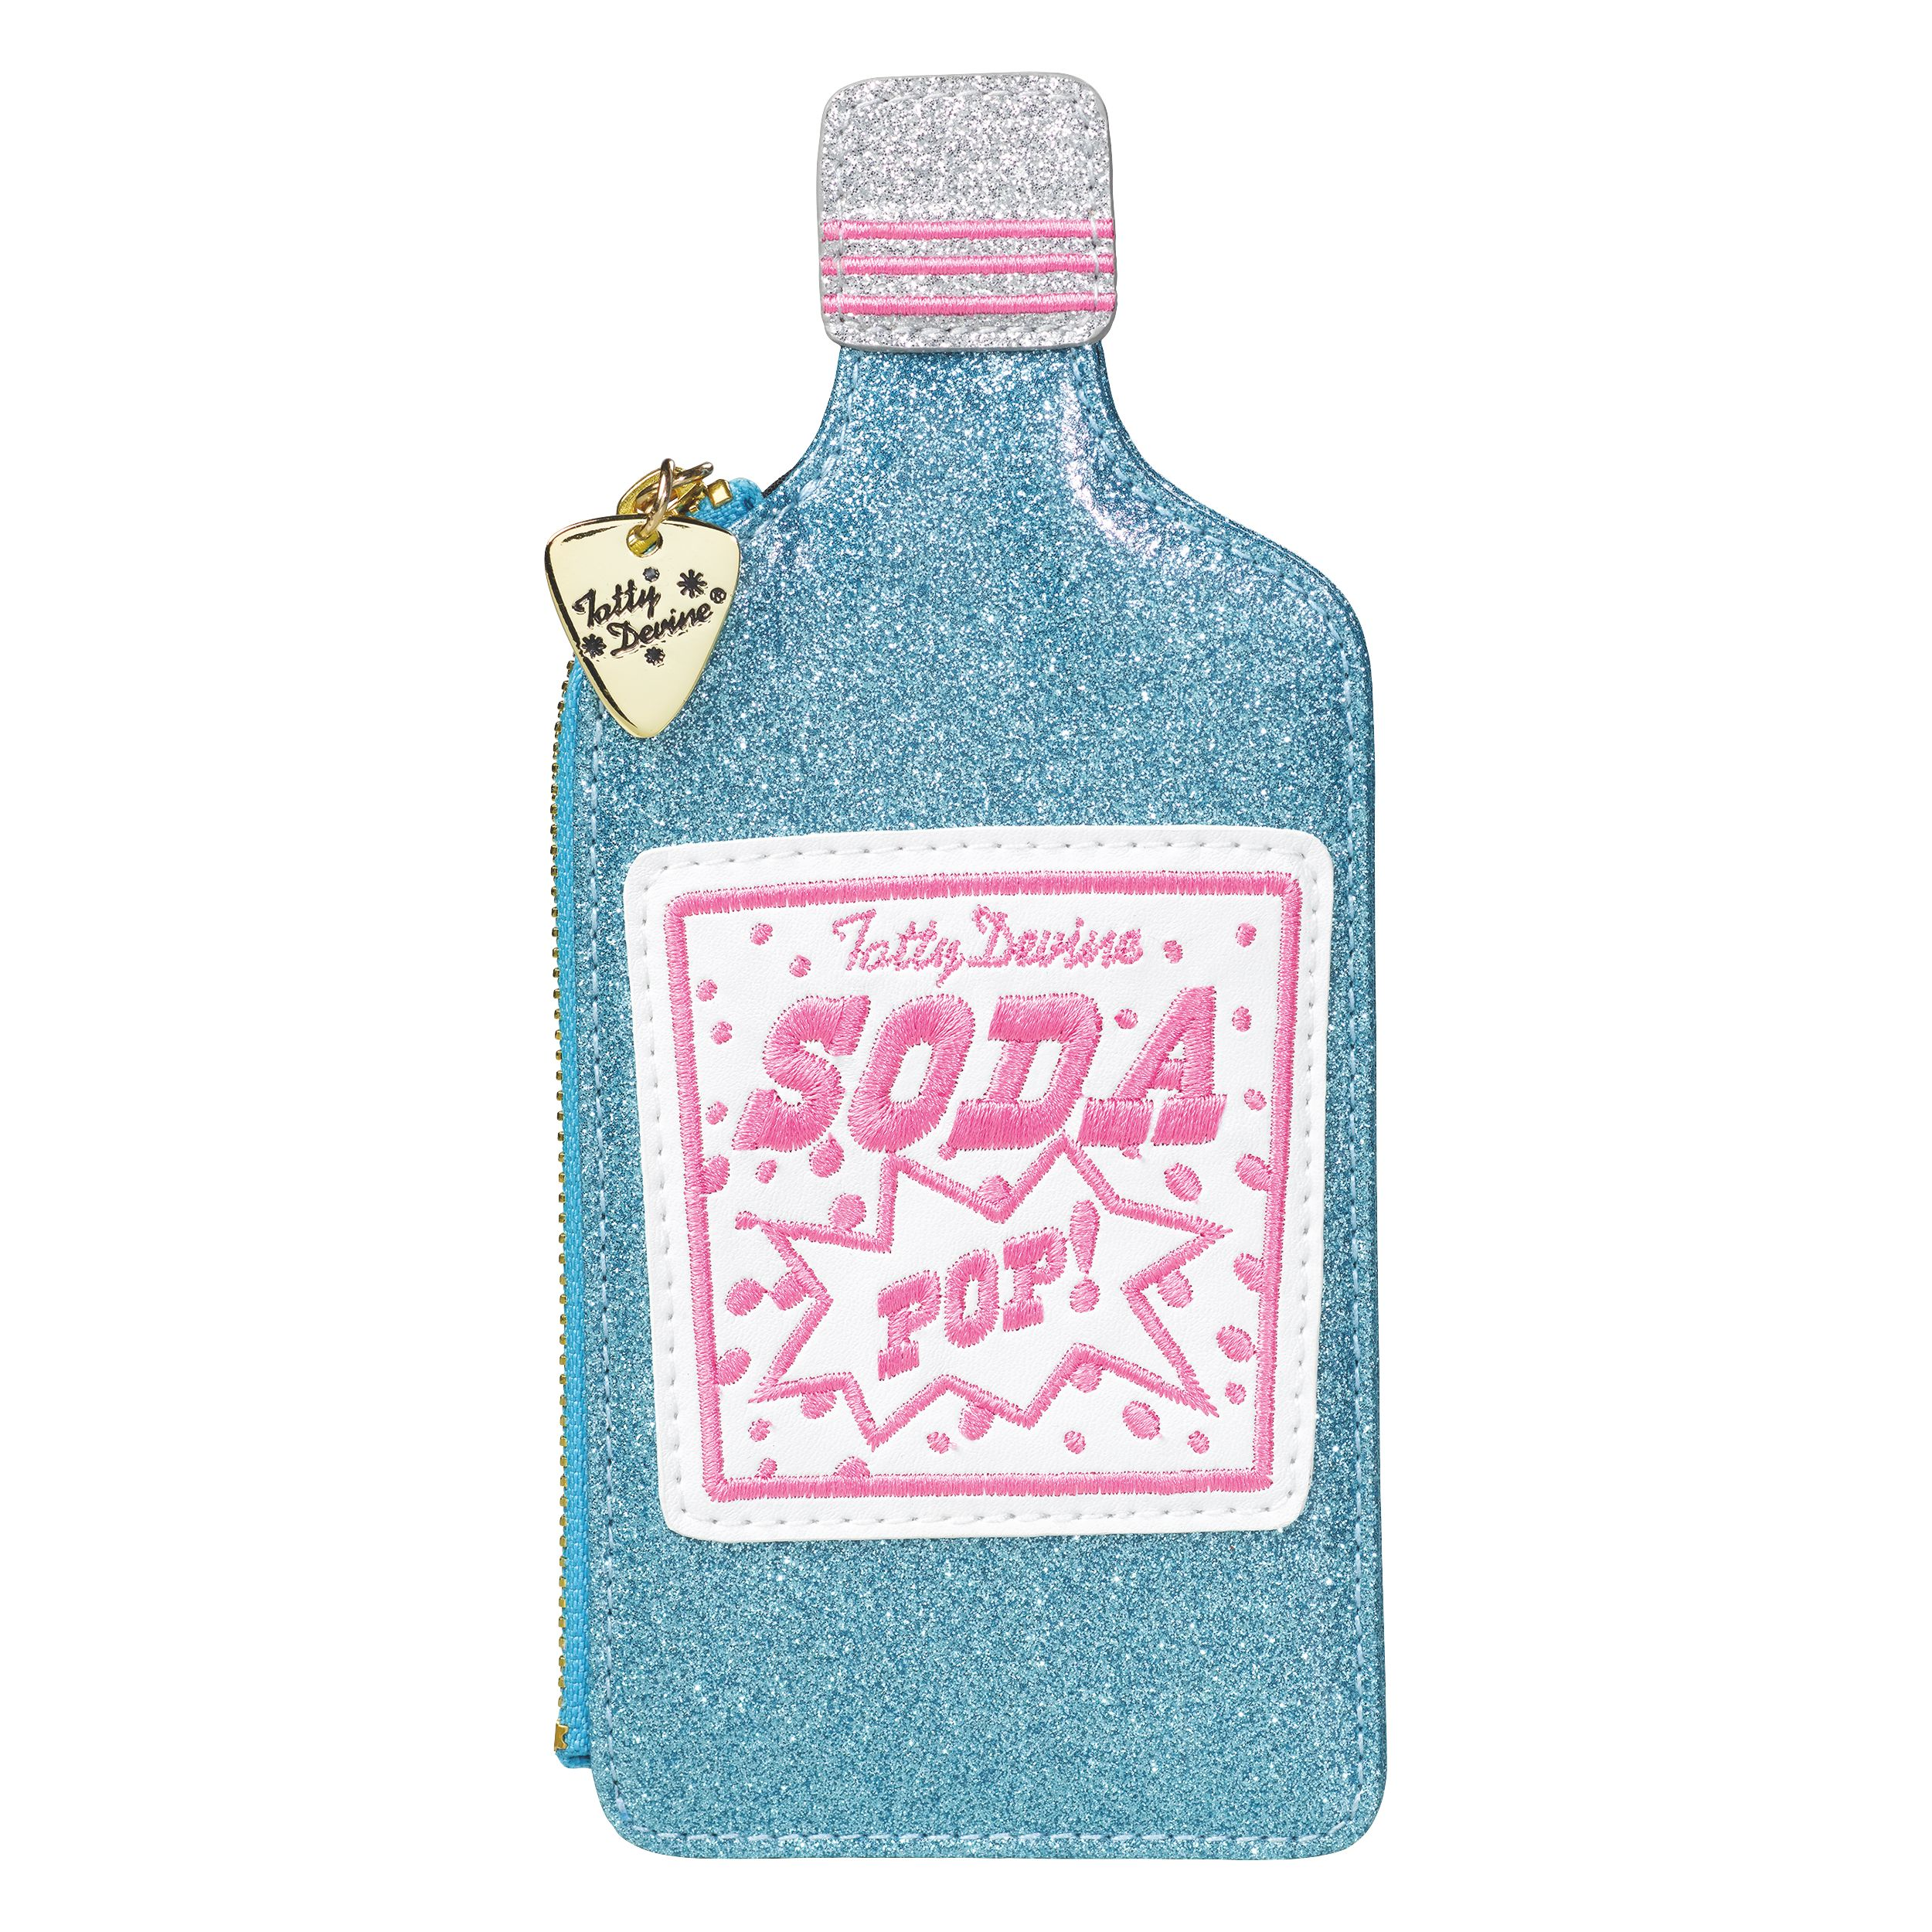 Tatty Devine Soda Pop Coin Purse, Blue